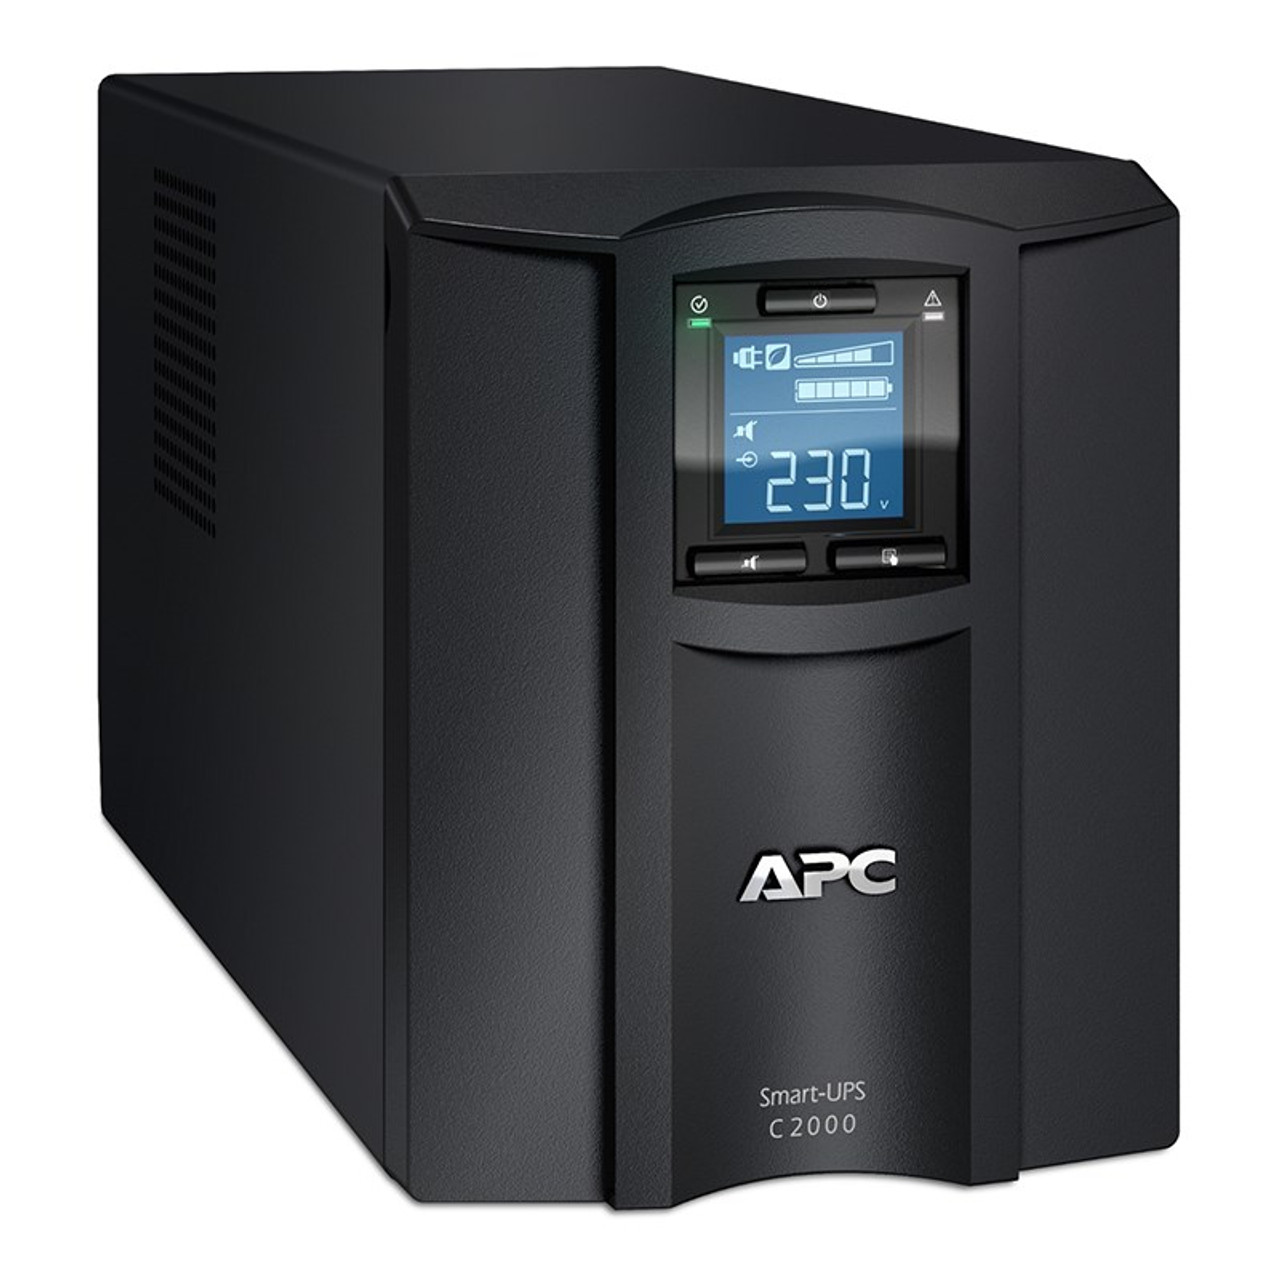 Image for APC SMC2000I Smart-UPS C 2000VA/1300W Sinewave Line Interactive UPS CX Computer Superstore